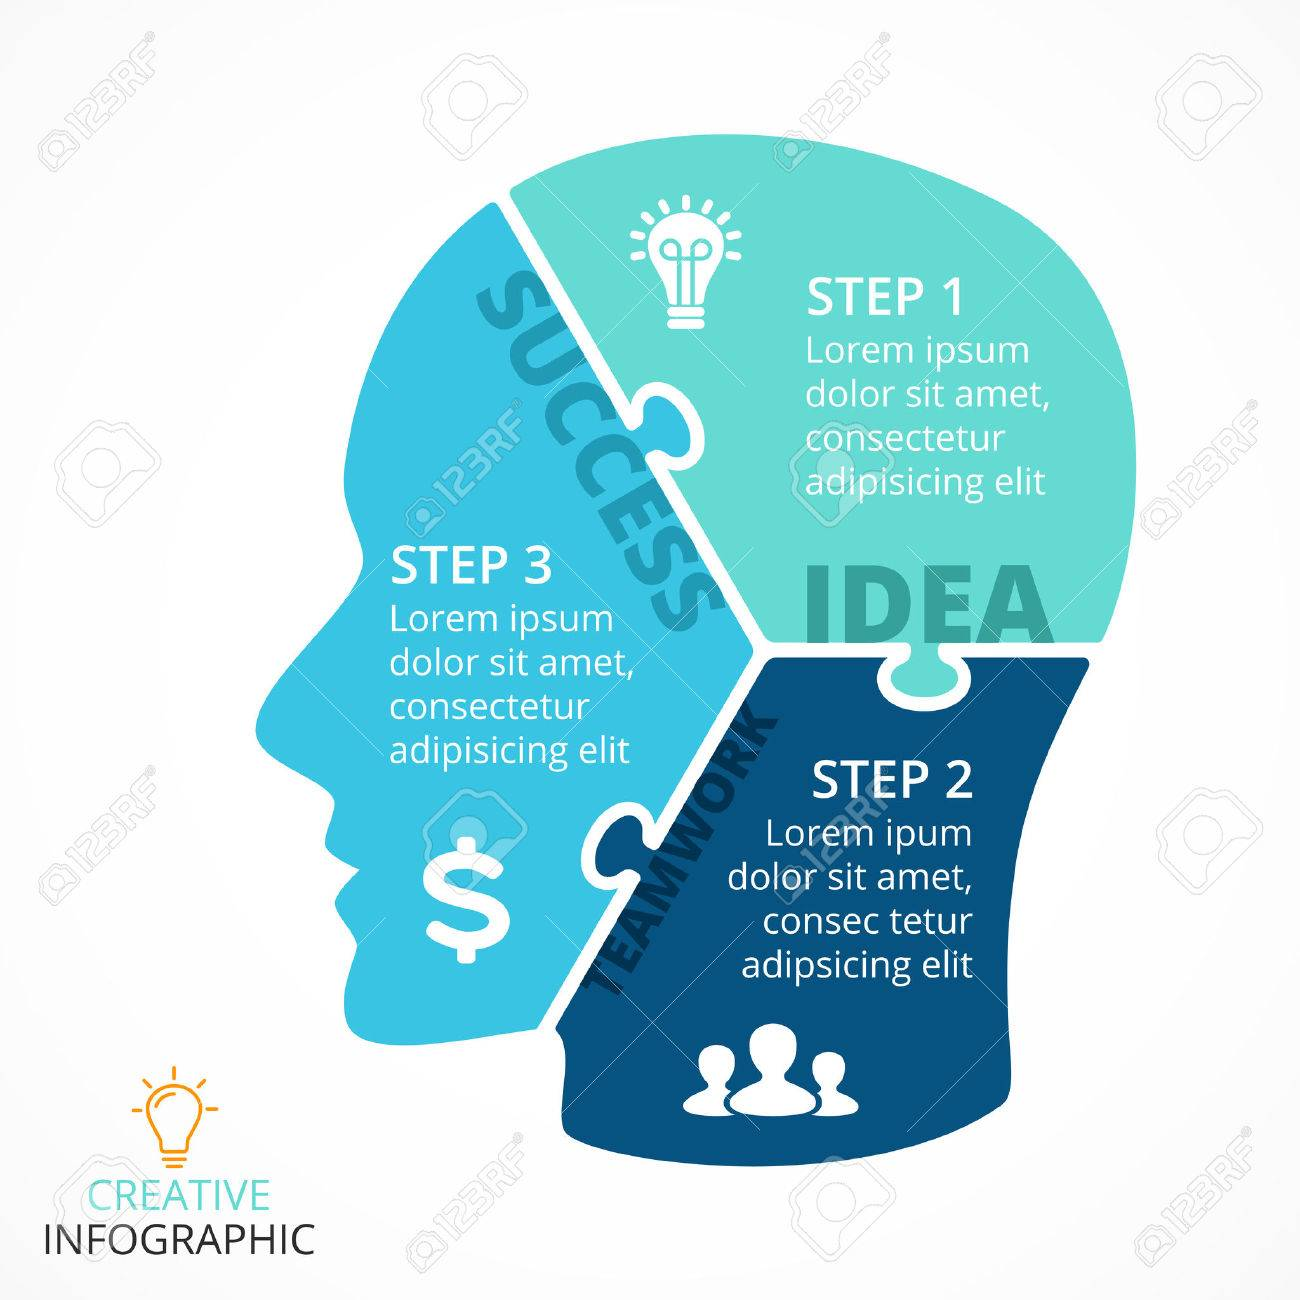 hight resolution of vector puzzle human face infographic cycle brainstorming diagram creativity generating ideas minds